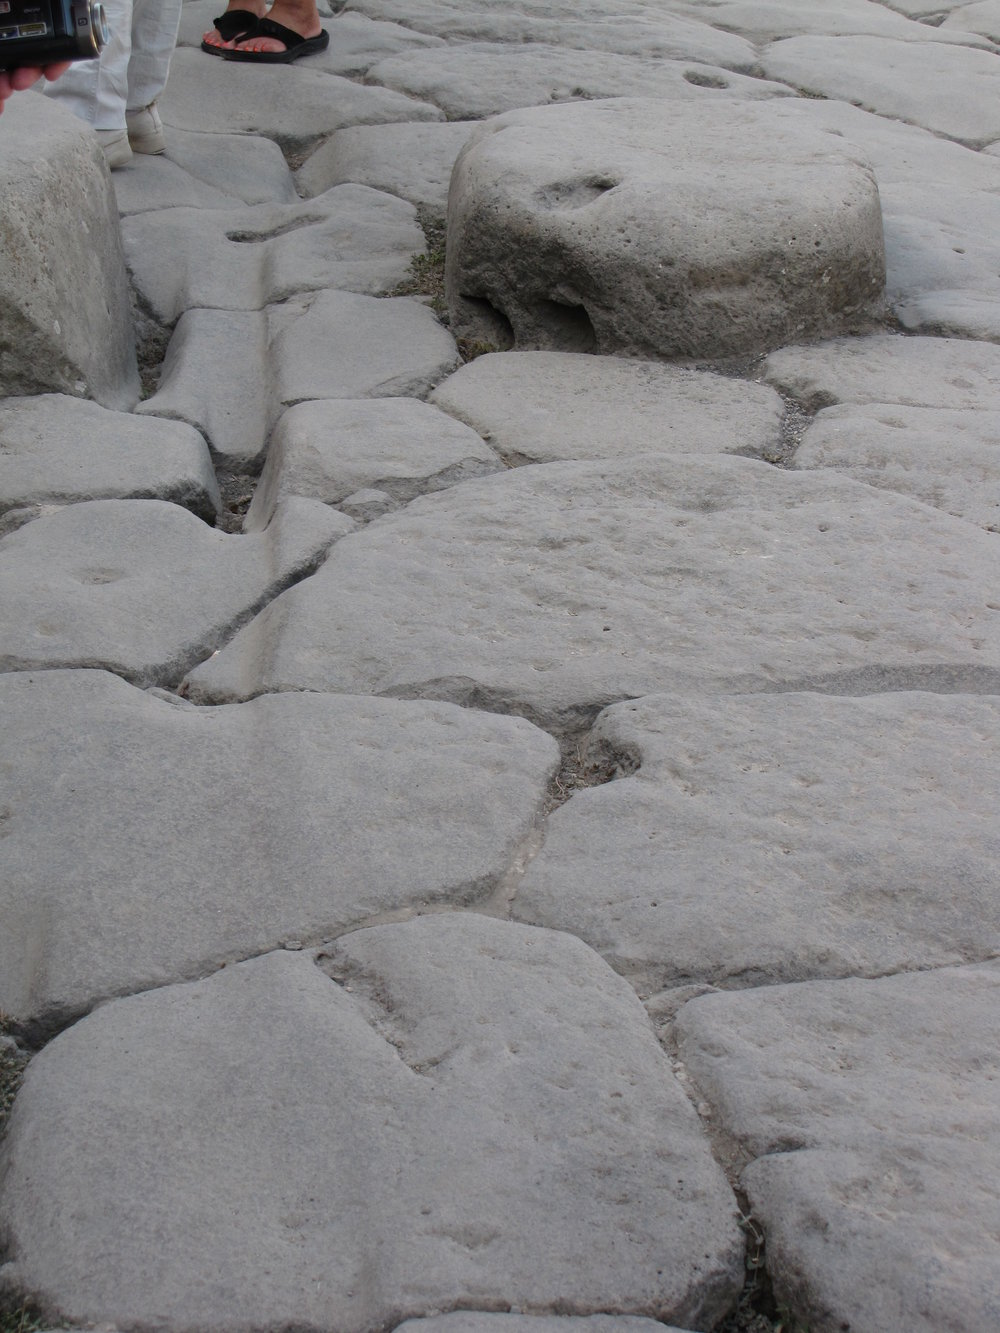 A street in Pompeii—look closely to see the stepping stones to avoid water and waste in the streets and the chariot ruts carved into the stones